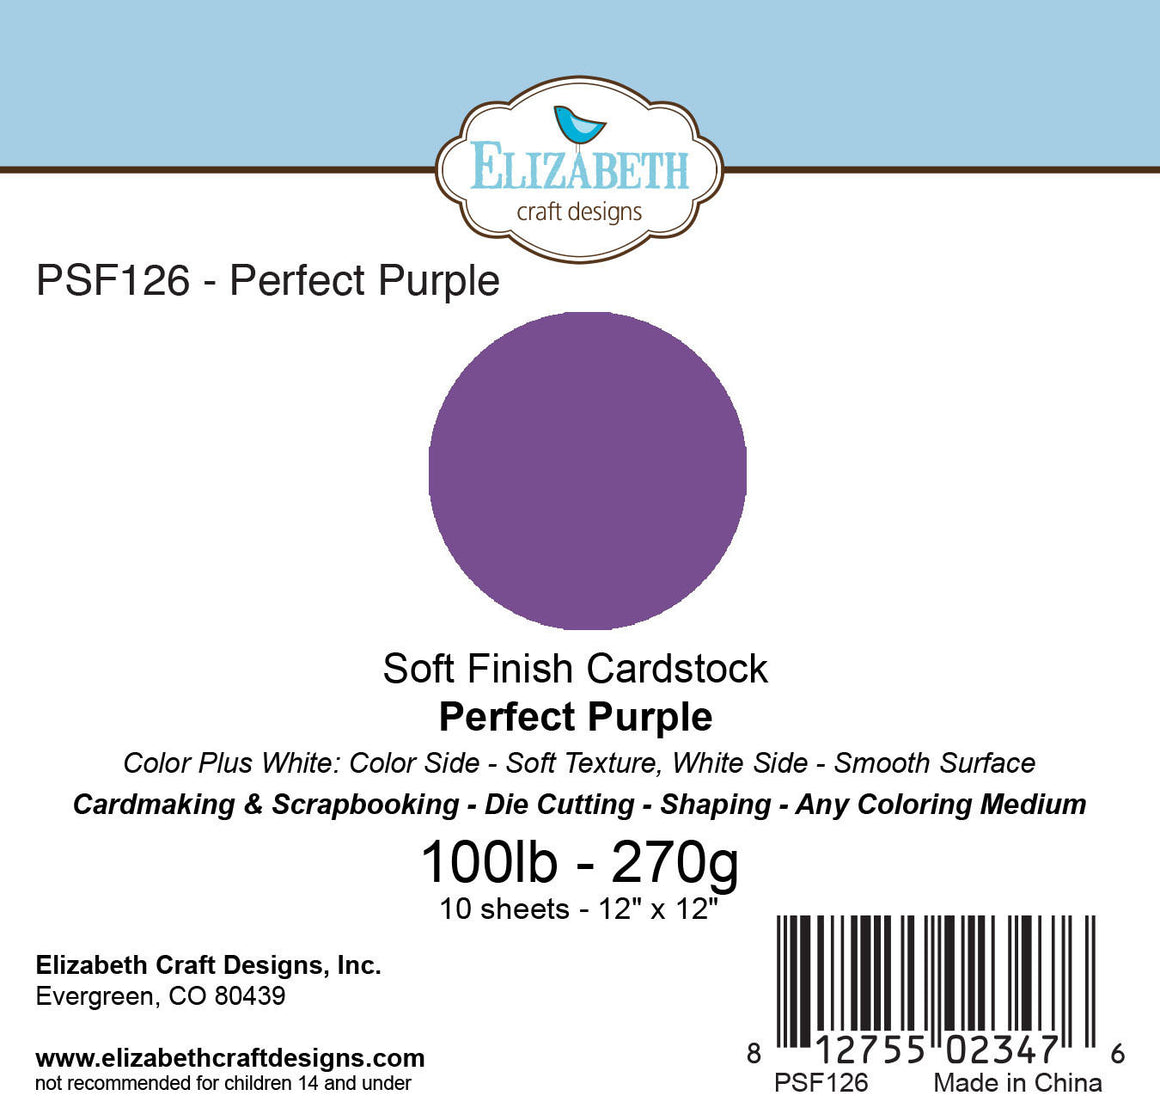 Soft Finish Cardstock, Perfect Purple